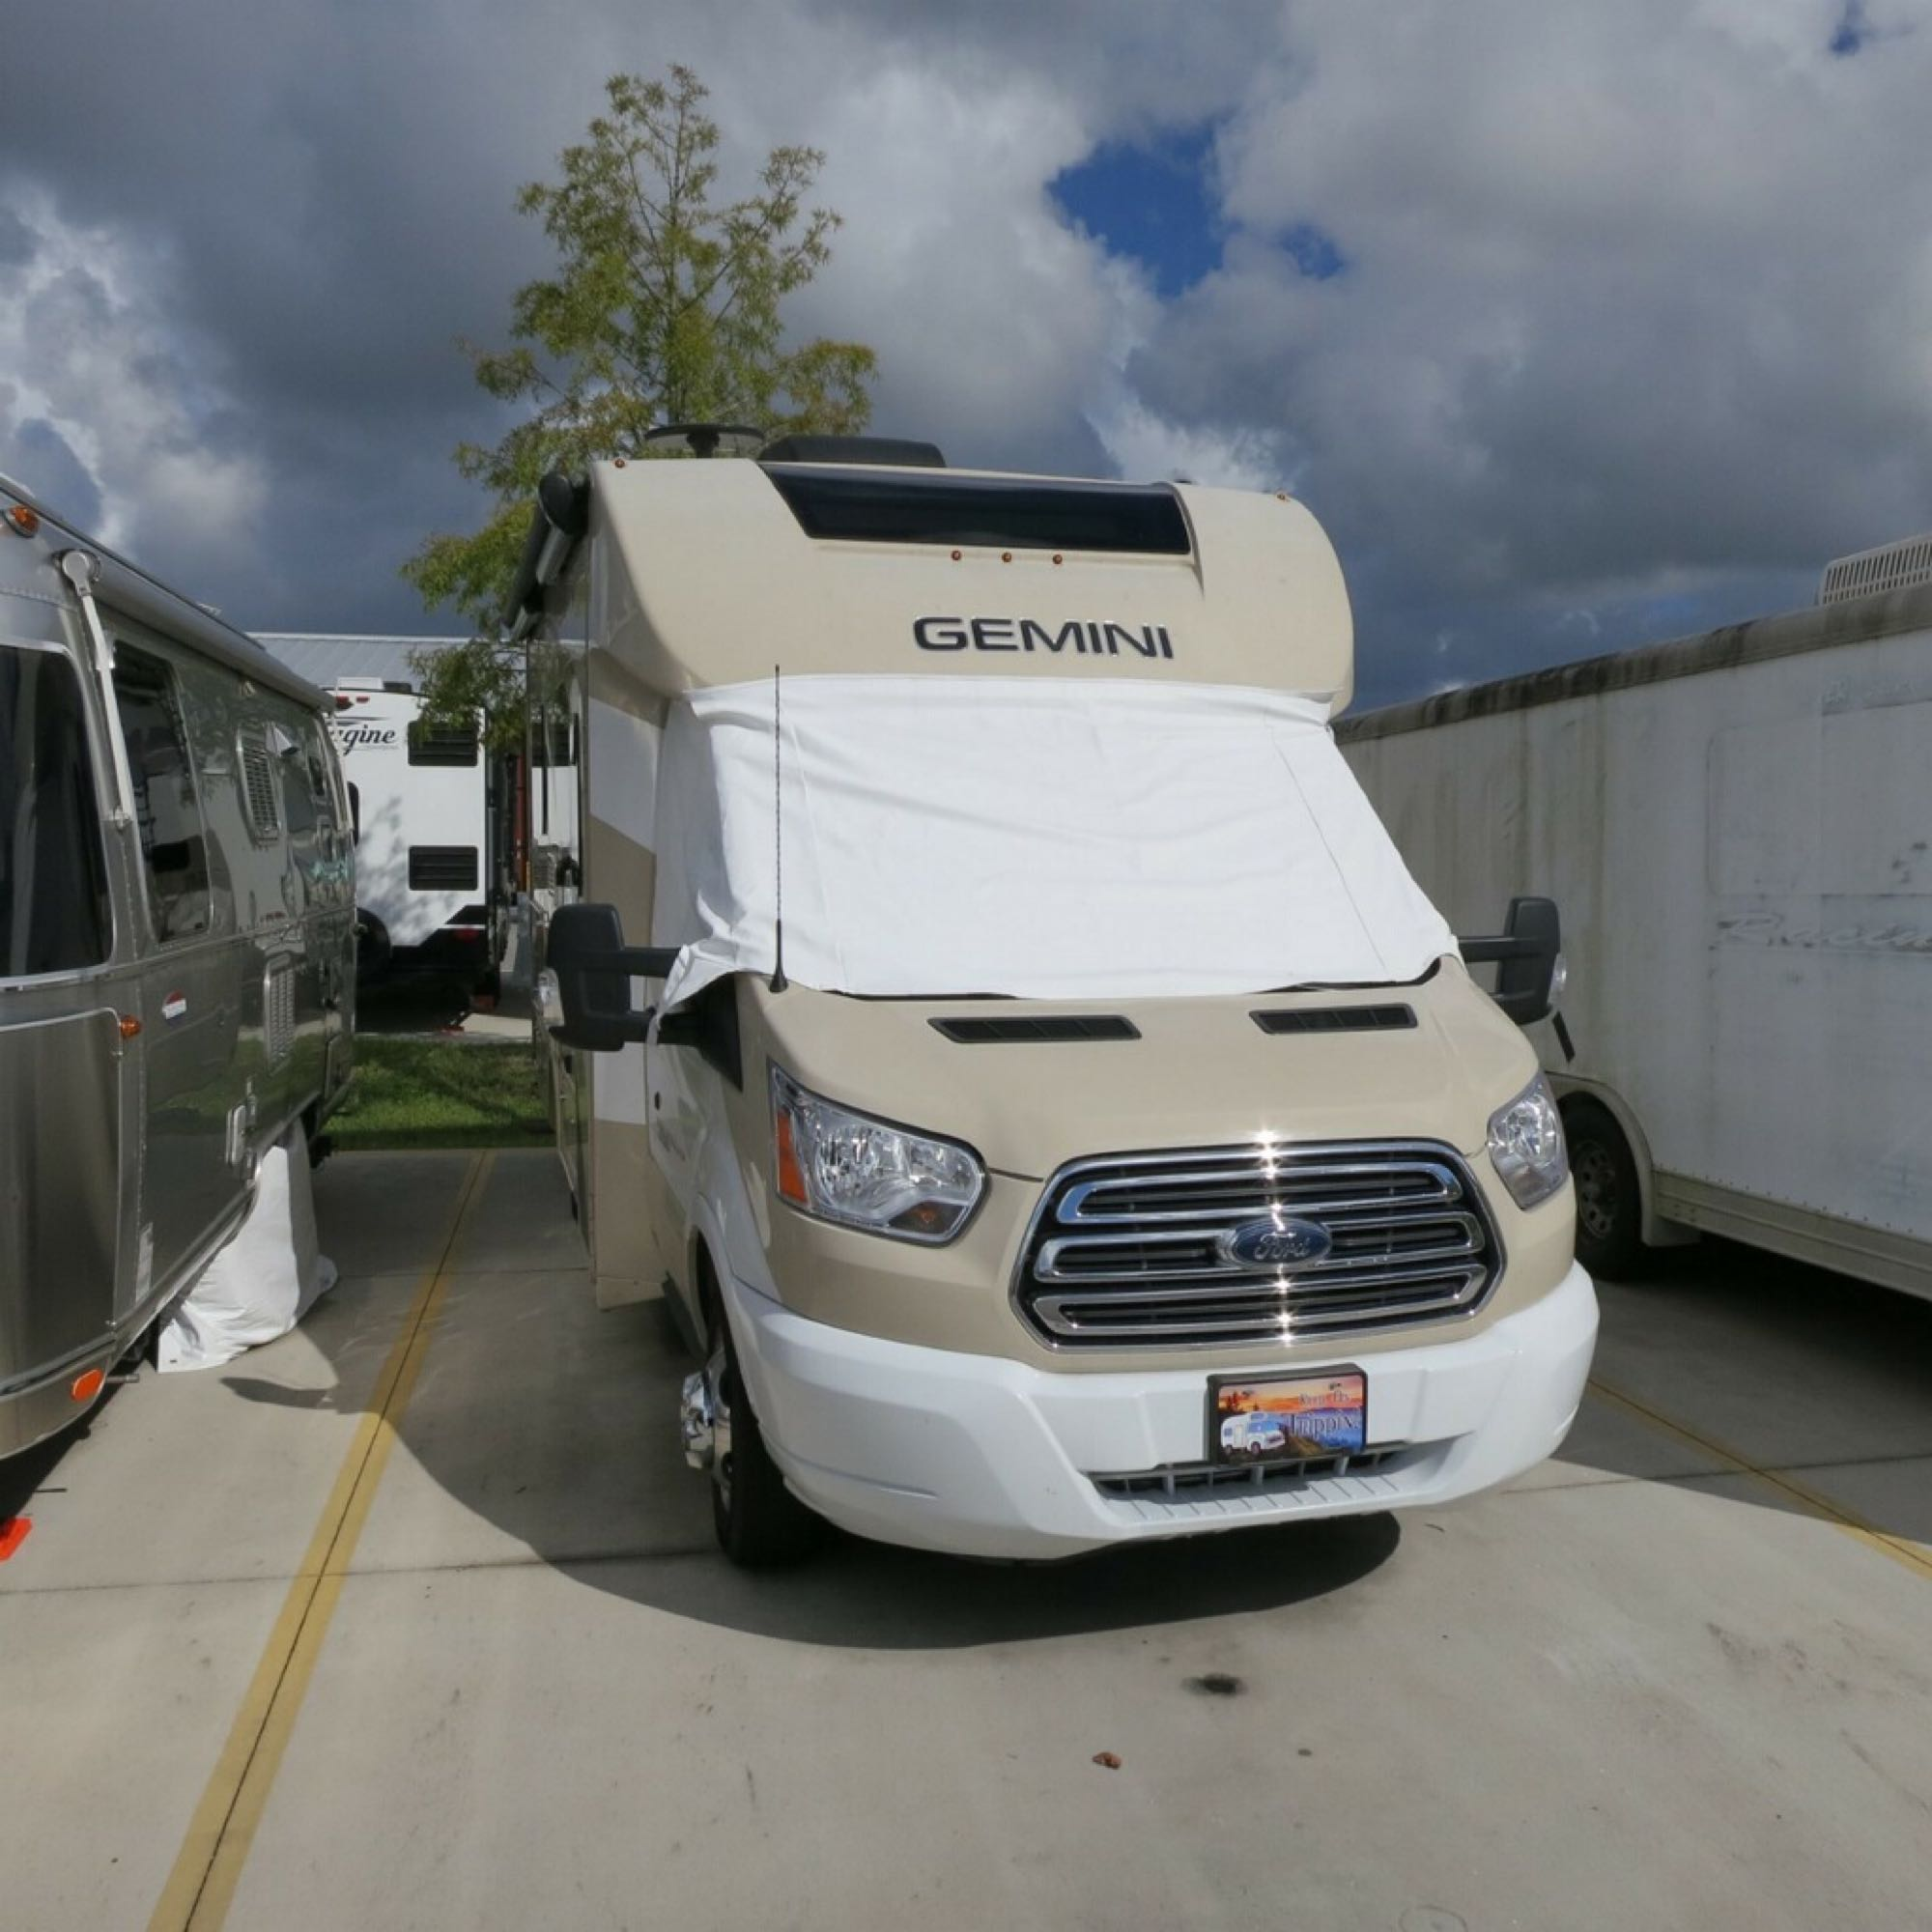 Unit is 23ft in length, easy to maneuver in regular parking spaces.  . Thor Motor Coach Gemini 23TK 2019